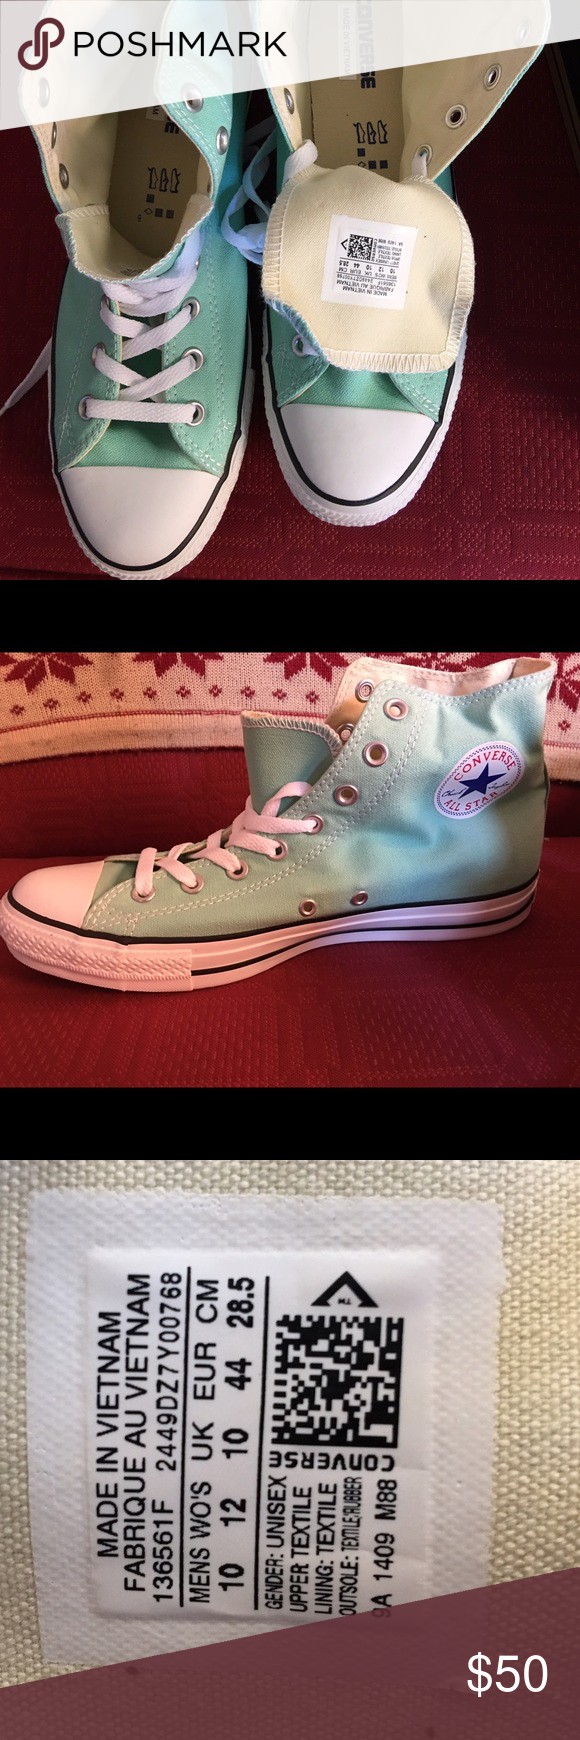 Mint green converse - brand new! Never ever worn, brand new still in box! Men's or women's! Converse Shoes Sneakers